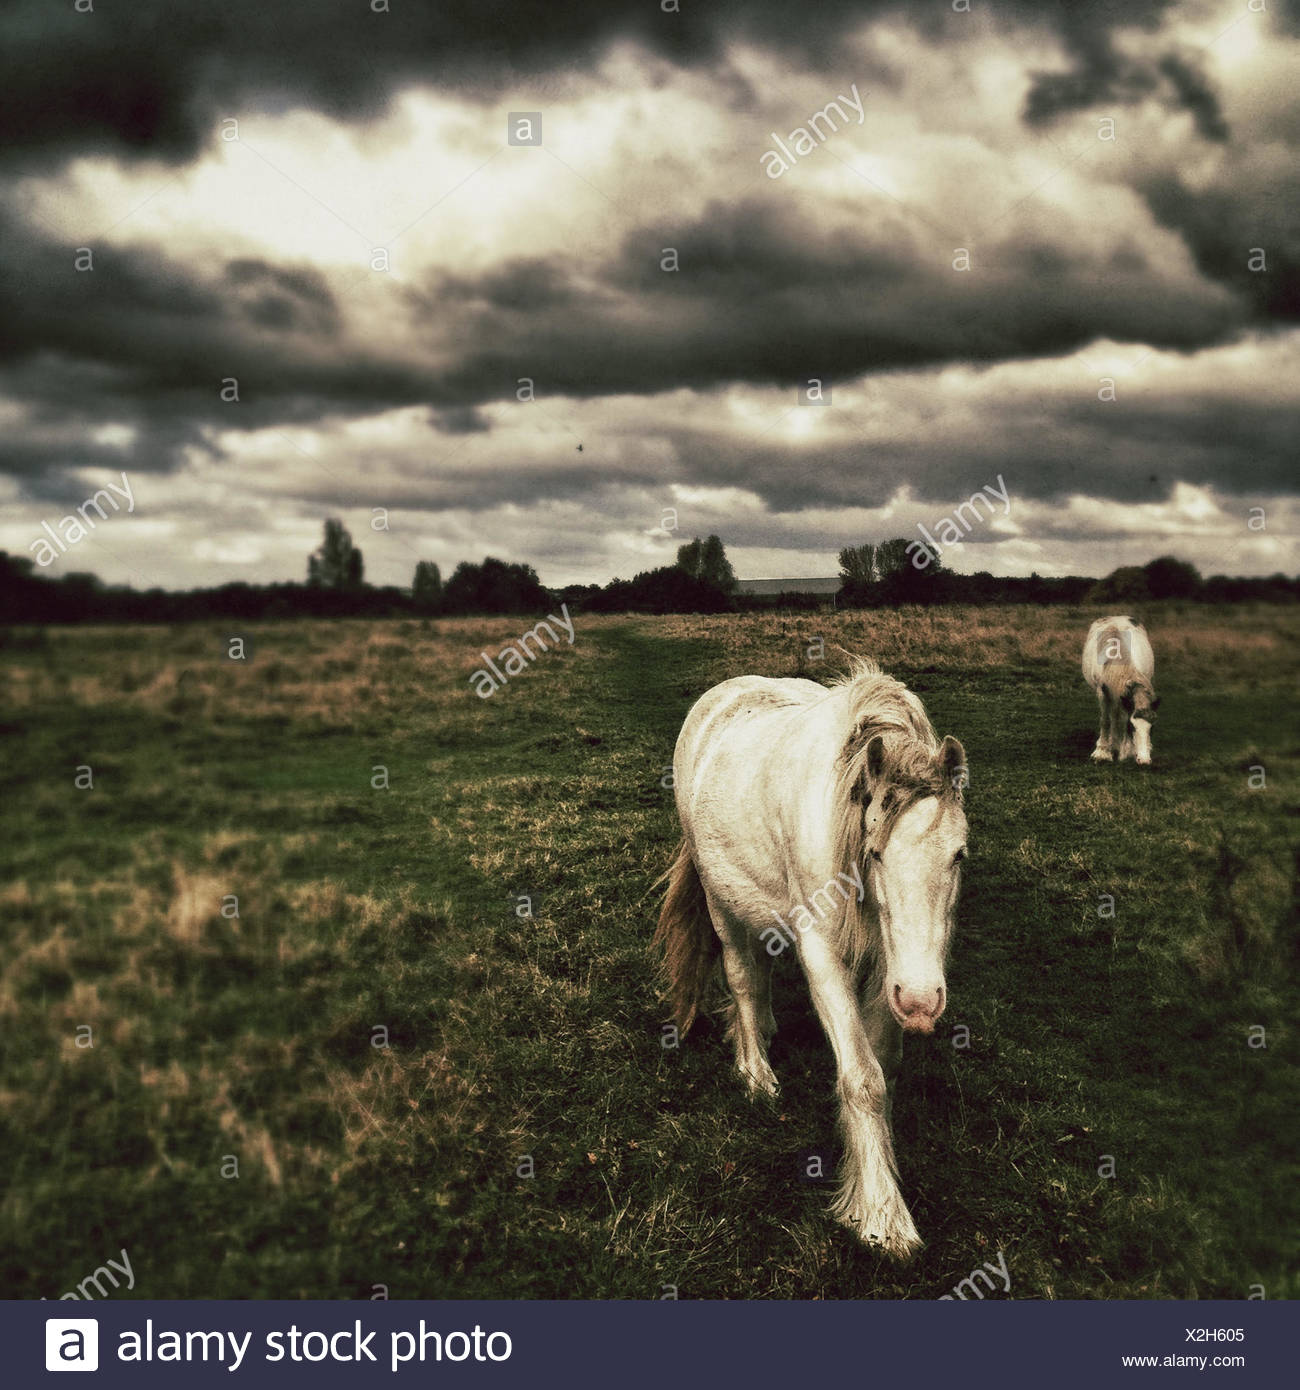 Two Horses in field with moody sky Stock Photo